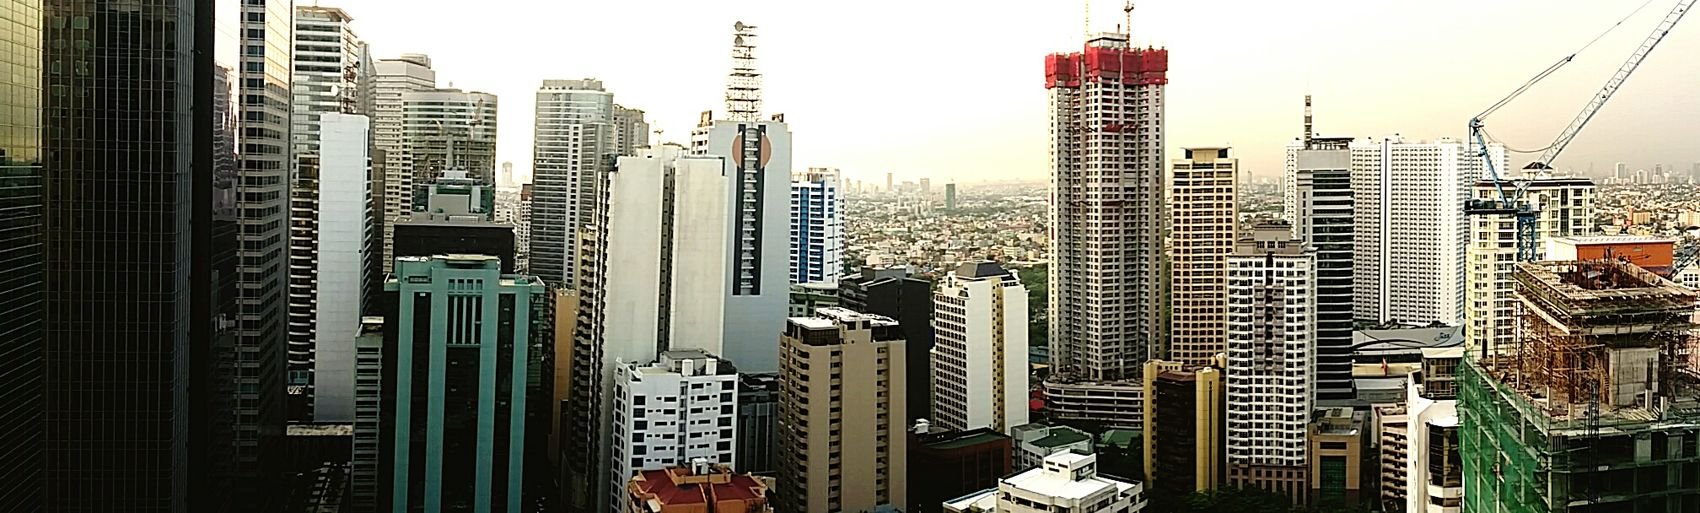 Cityscapes Makaticity Philippines